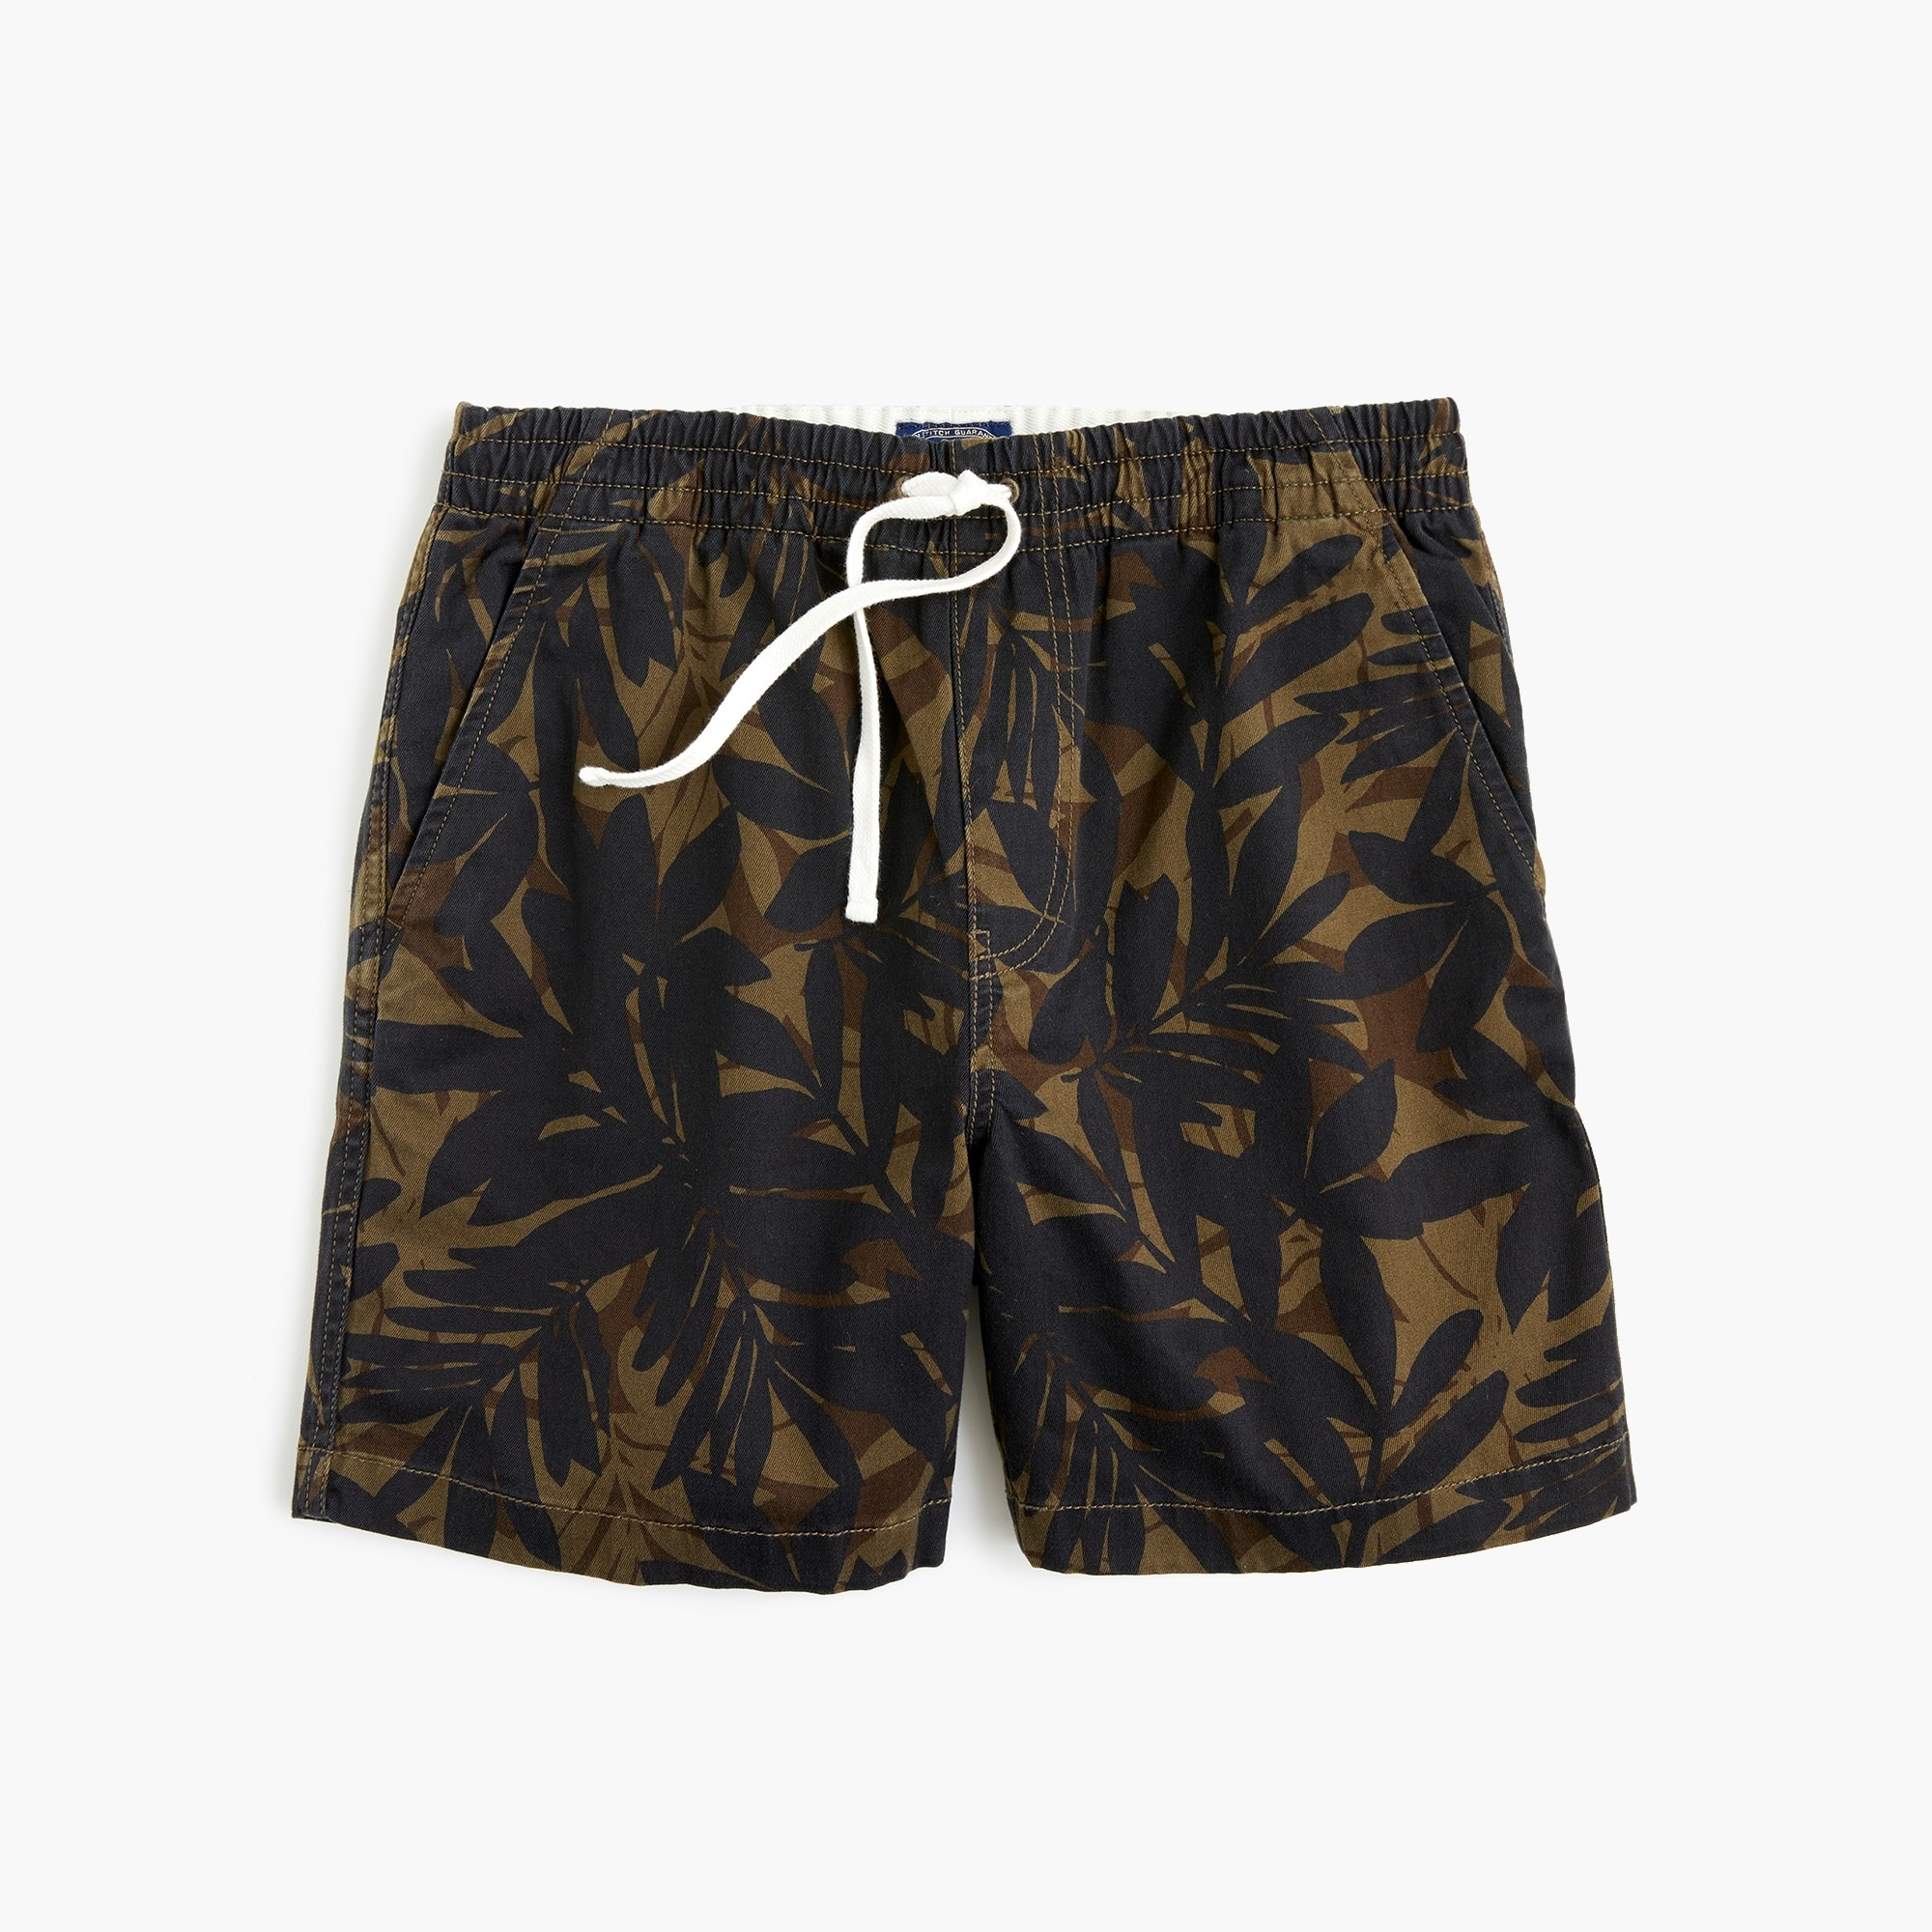 men's stretch dock short in cotton camo - men's shorts